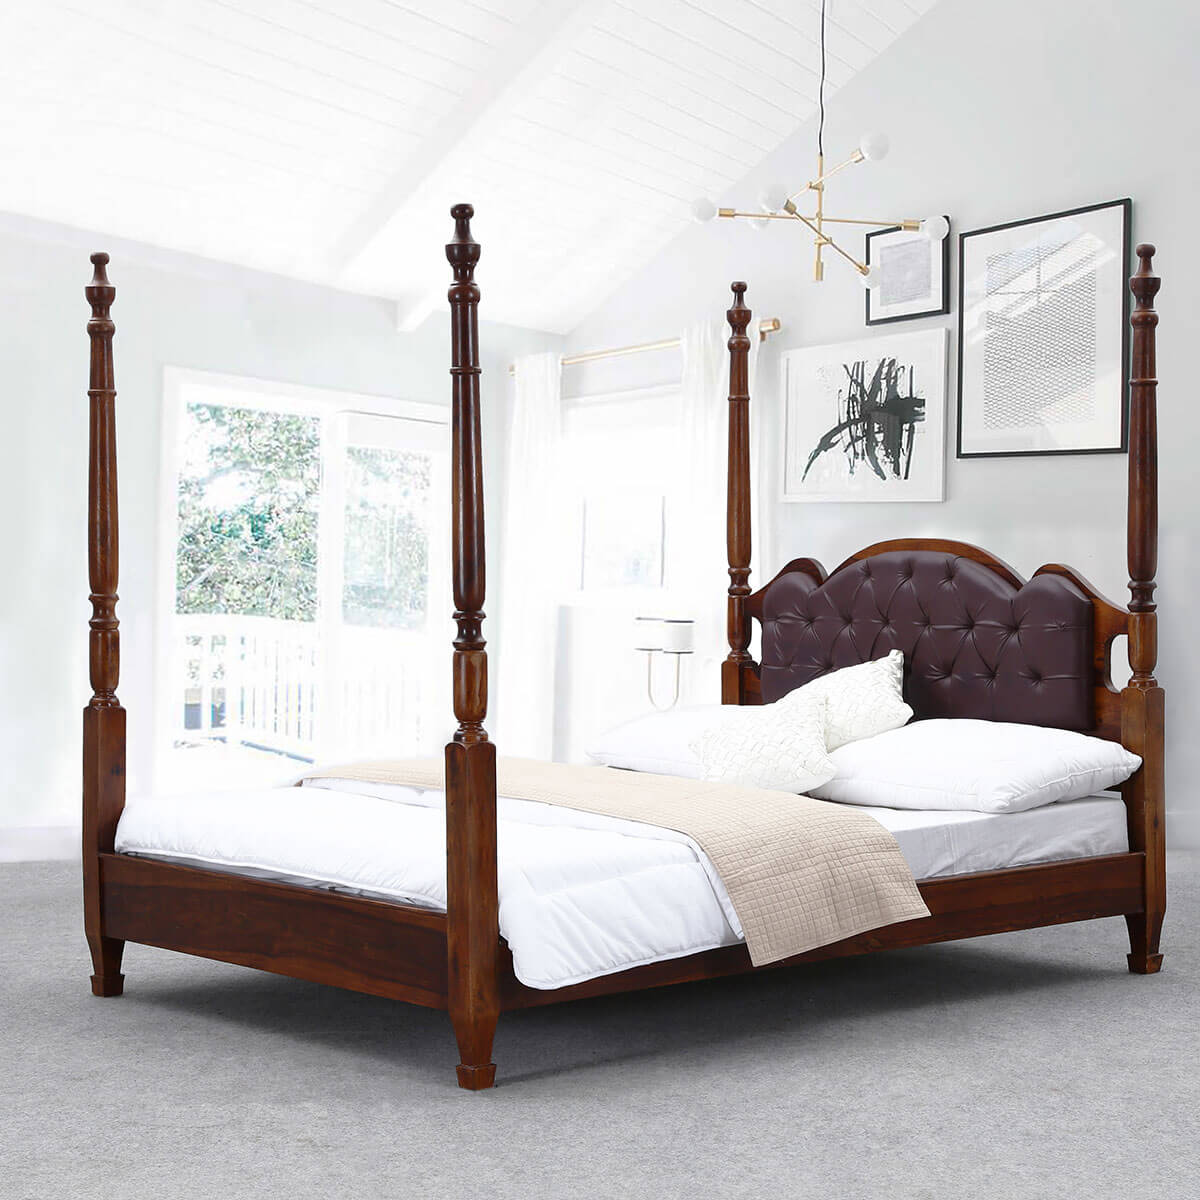 5187f5dc7e565 Four Poster Bed Frame w Headboard English Tudor Solid Wood   Leather. Hover  to zoom